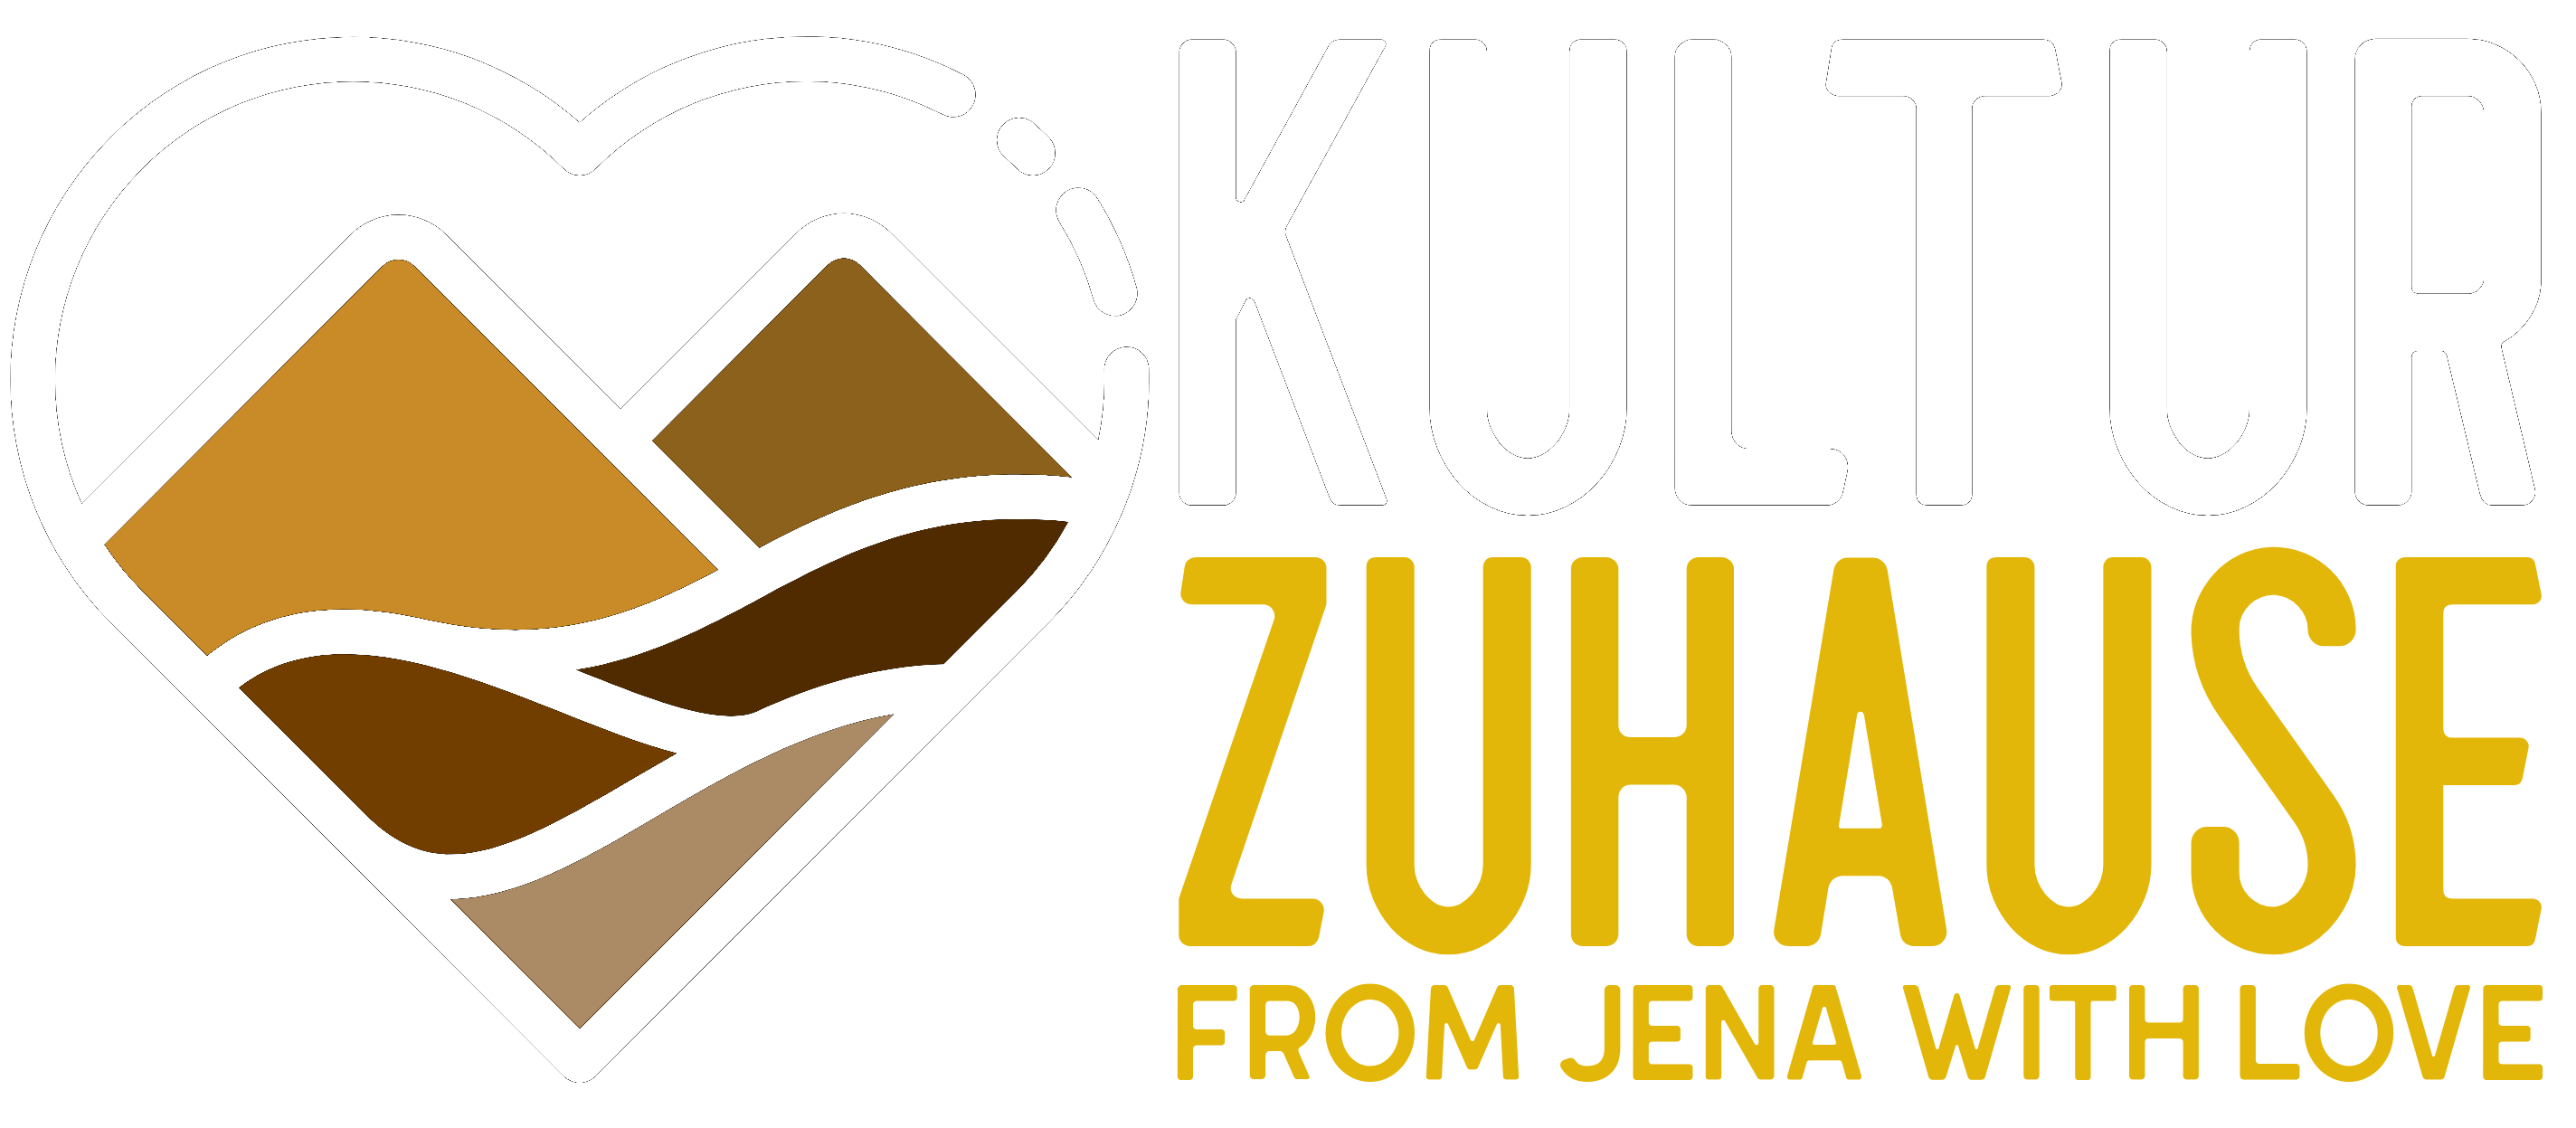 Kulturzuhause Logo from Jena with love